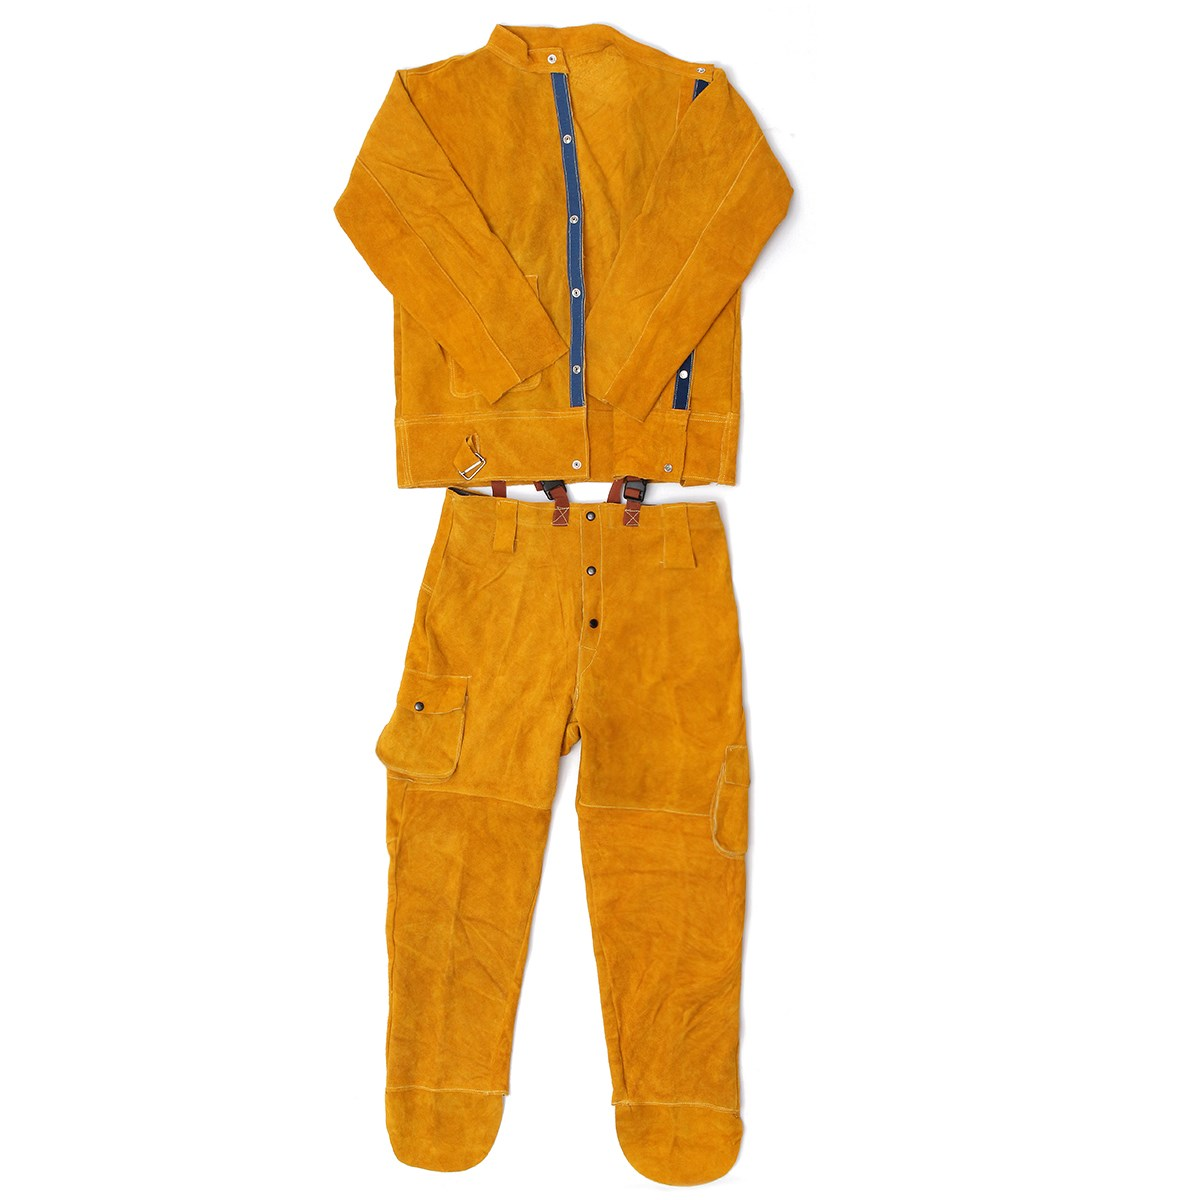 One Set Leather Welding Strap Trousers & Coat Protective Clothing Apparel Suit Welder Safety Clothing leather welding long coat apron protective clothing apparel suit welder workplace safety clothing